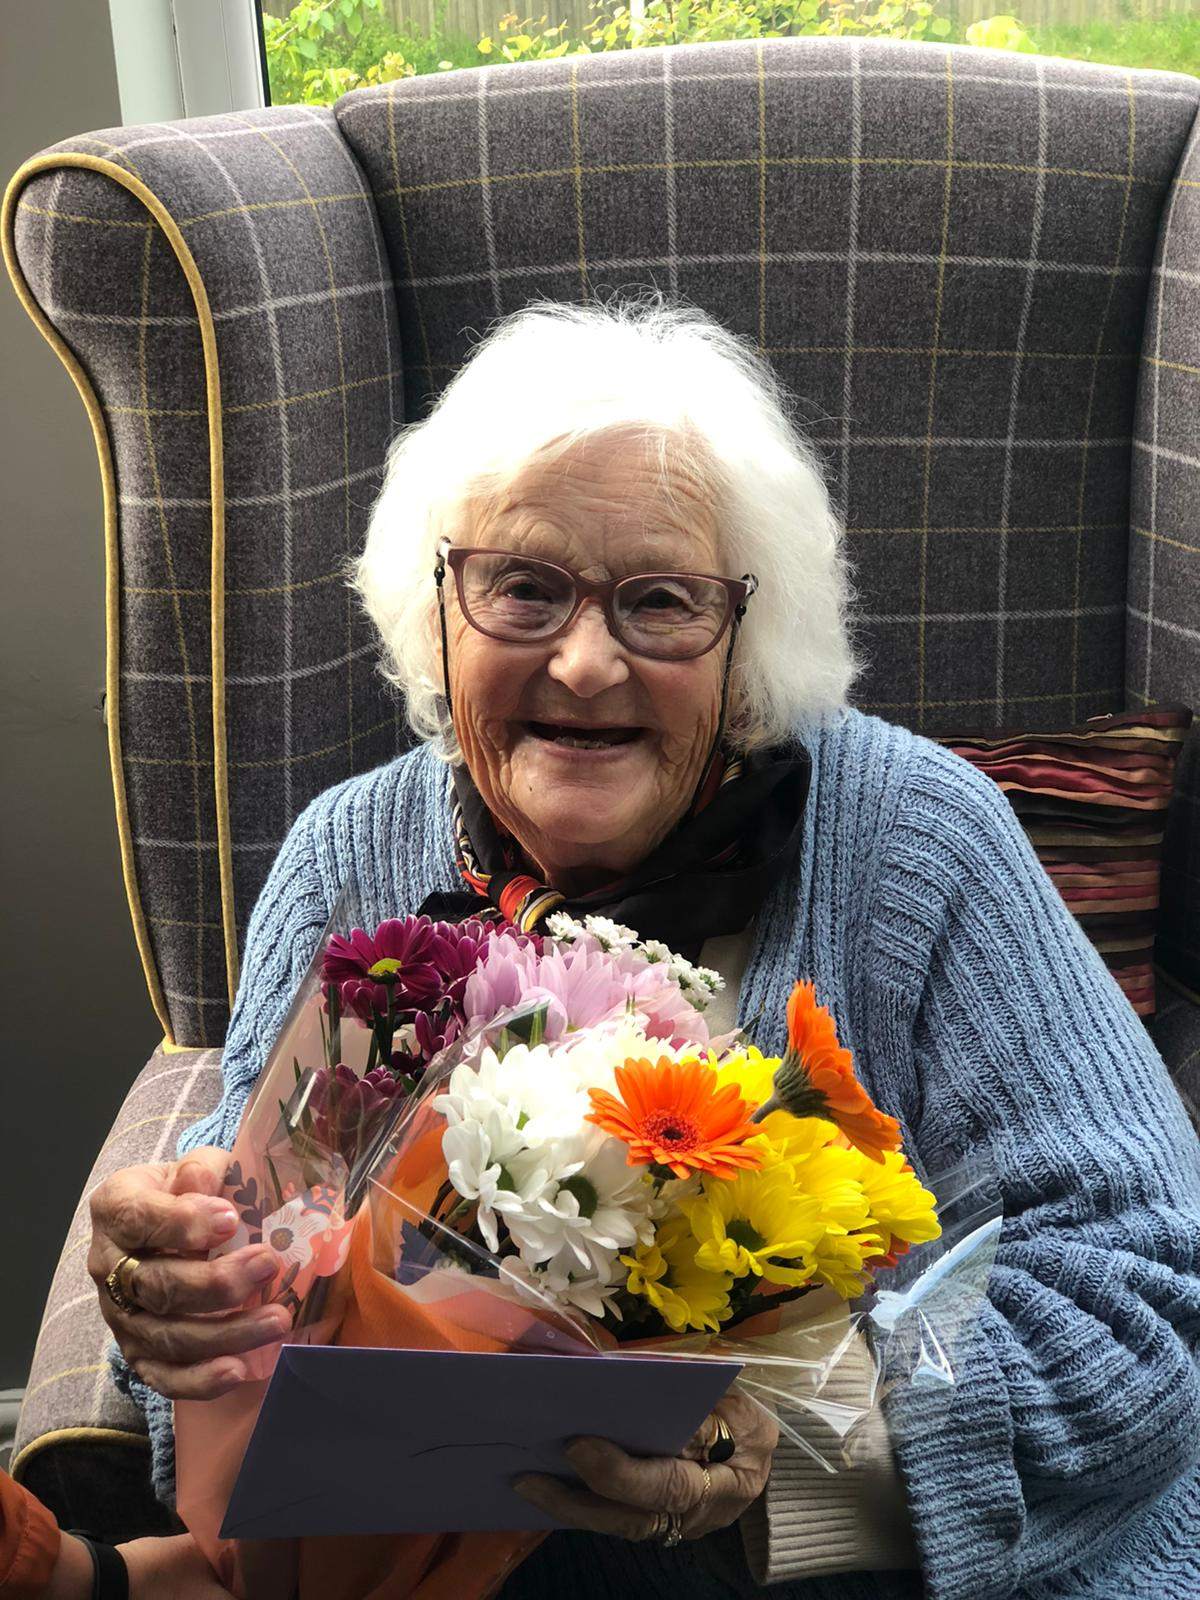 Margaret with her birthday flowers